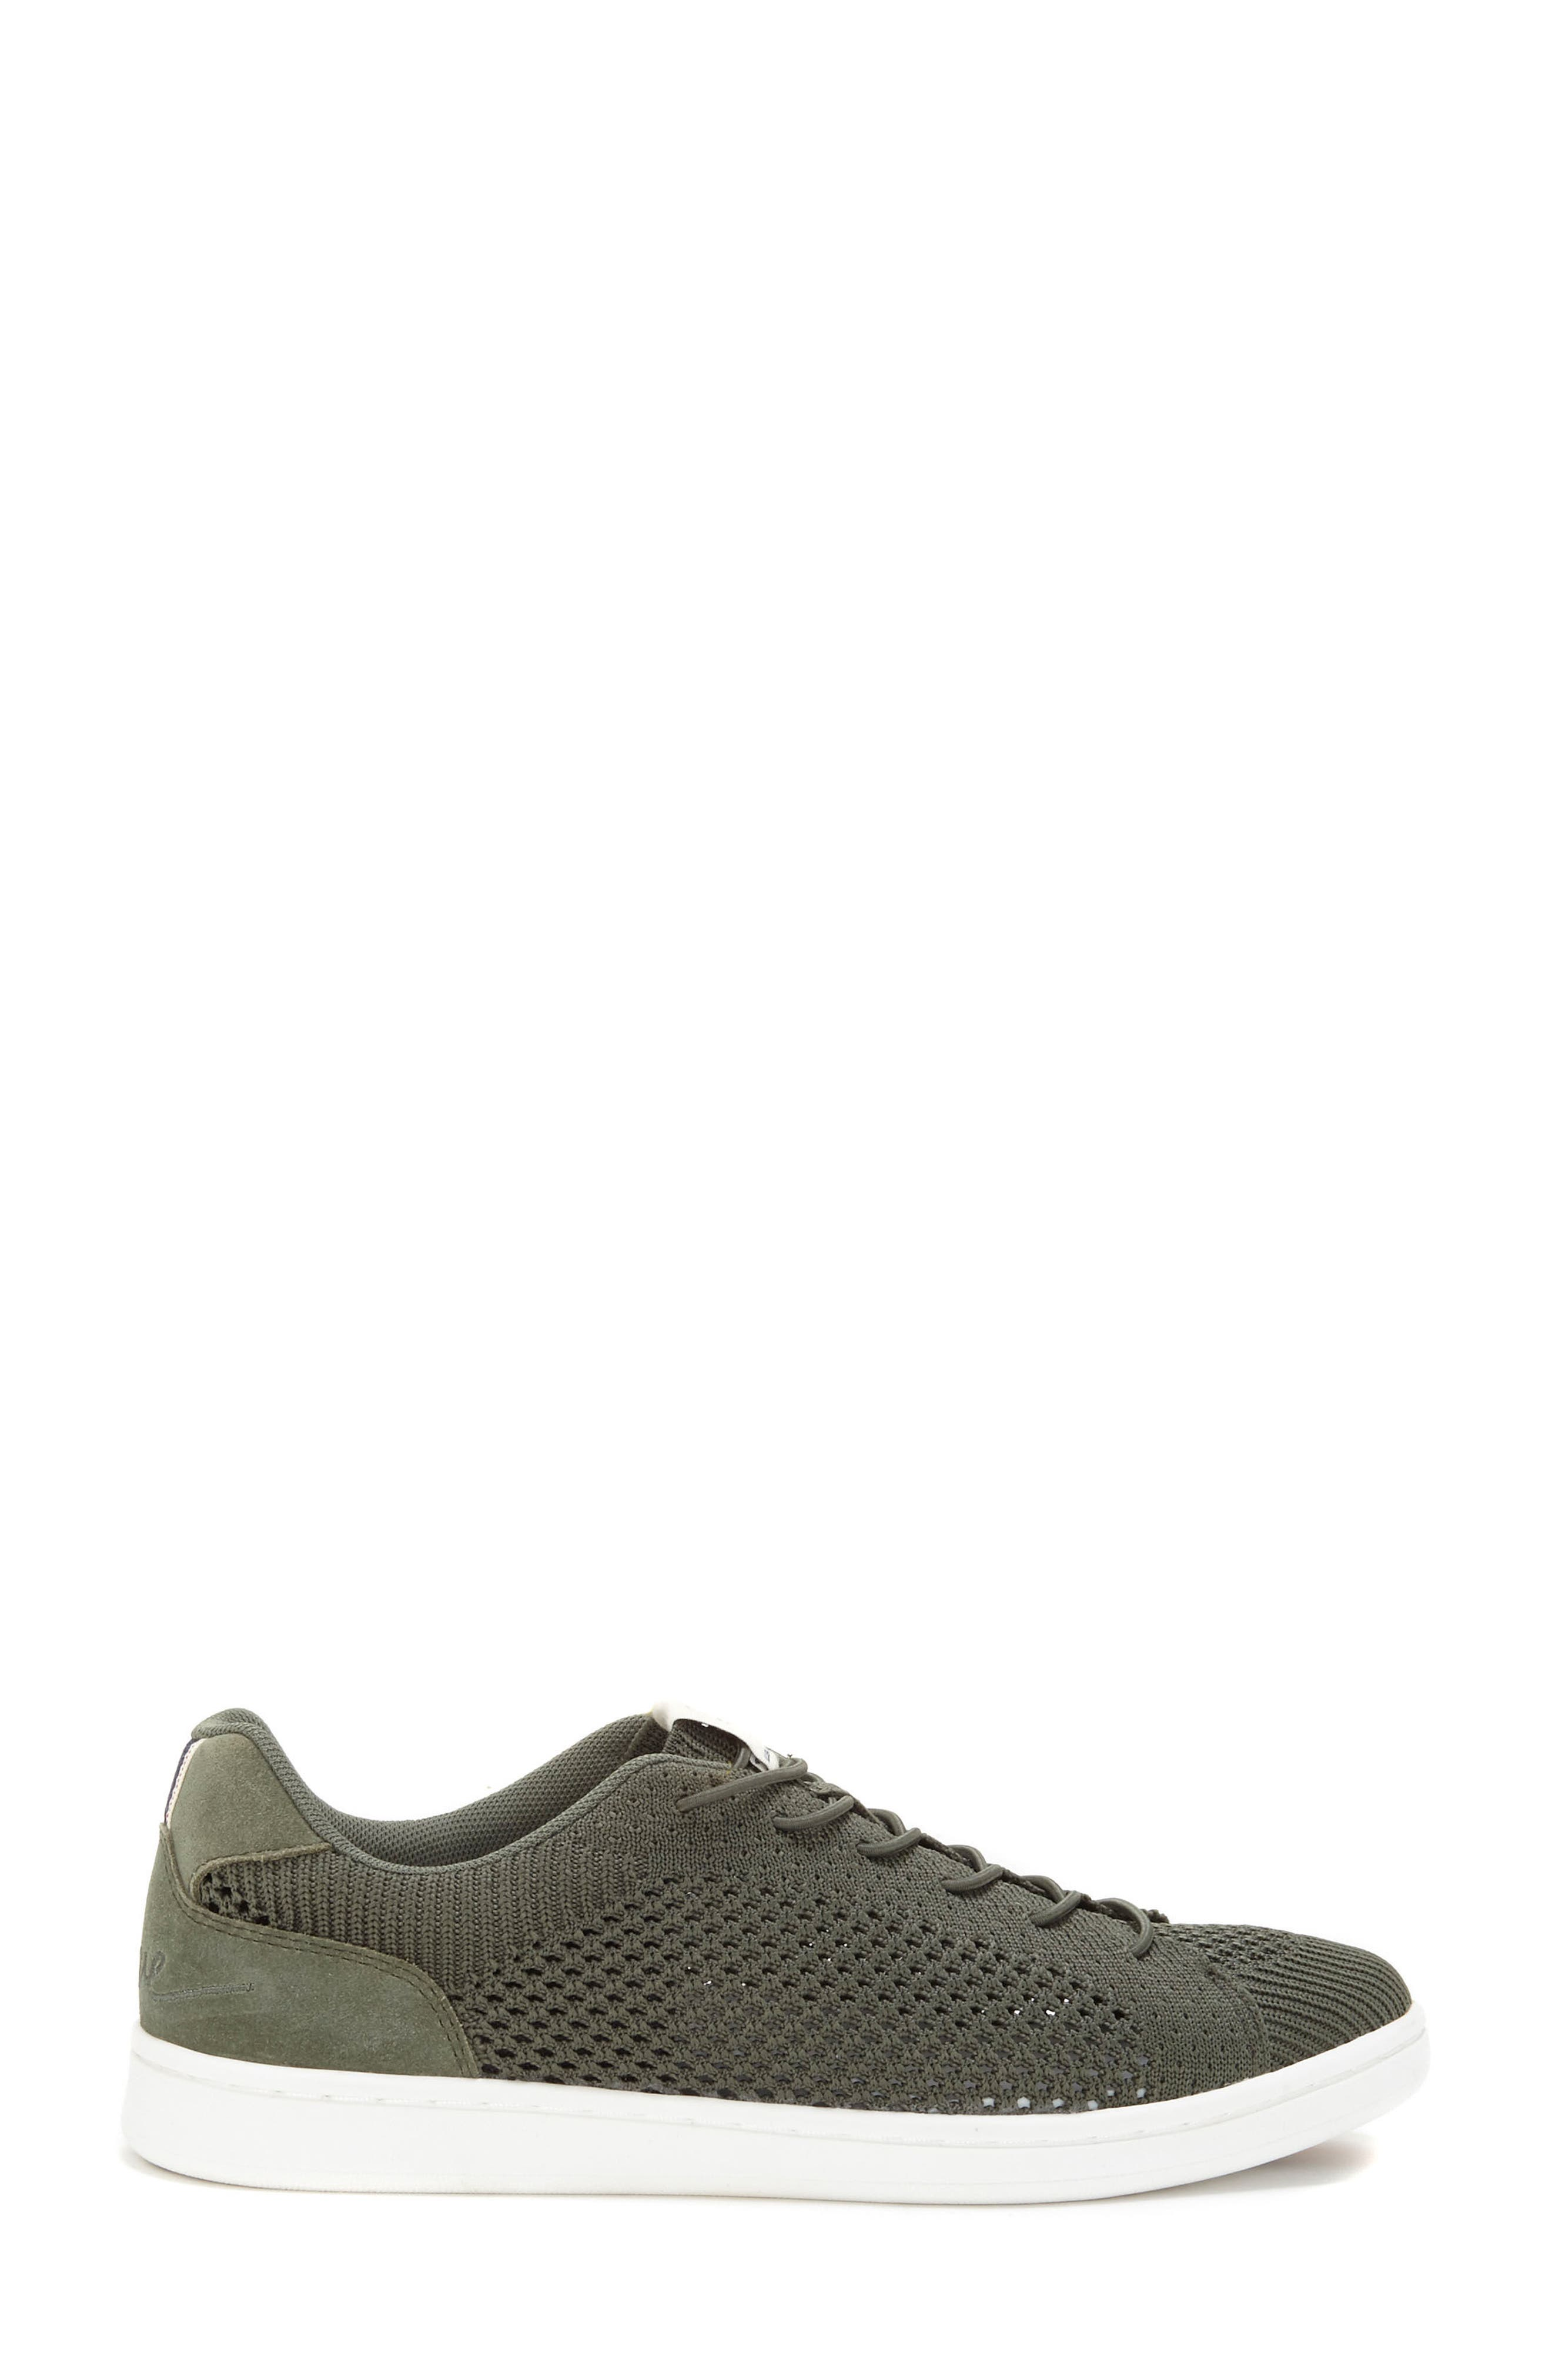 Casie Knit Sneaker,                             Alternate thumbnail 3, color,                             FOREST KNIT FABRIC